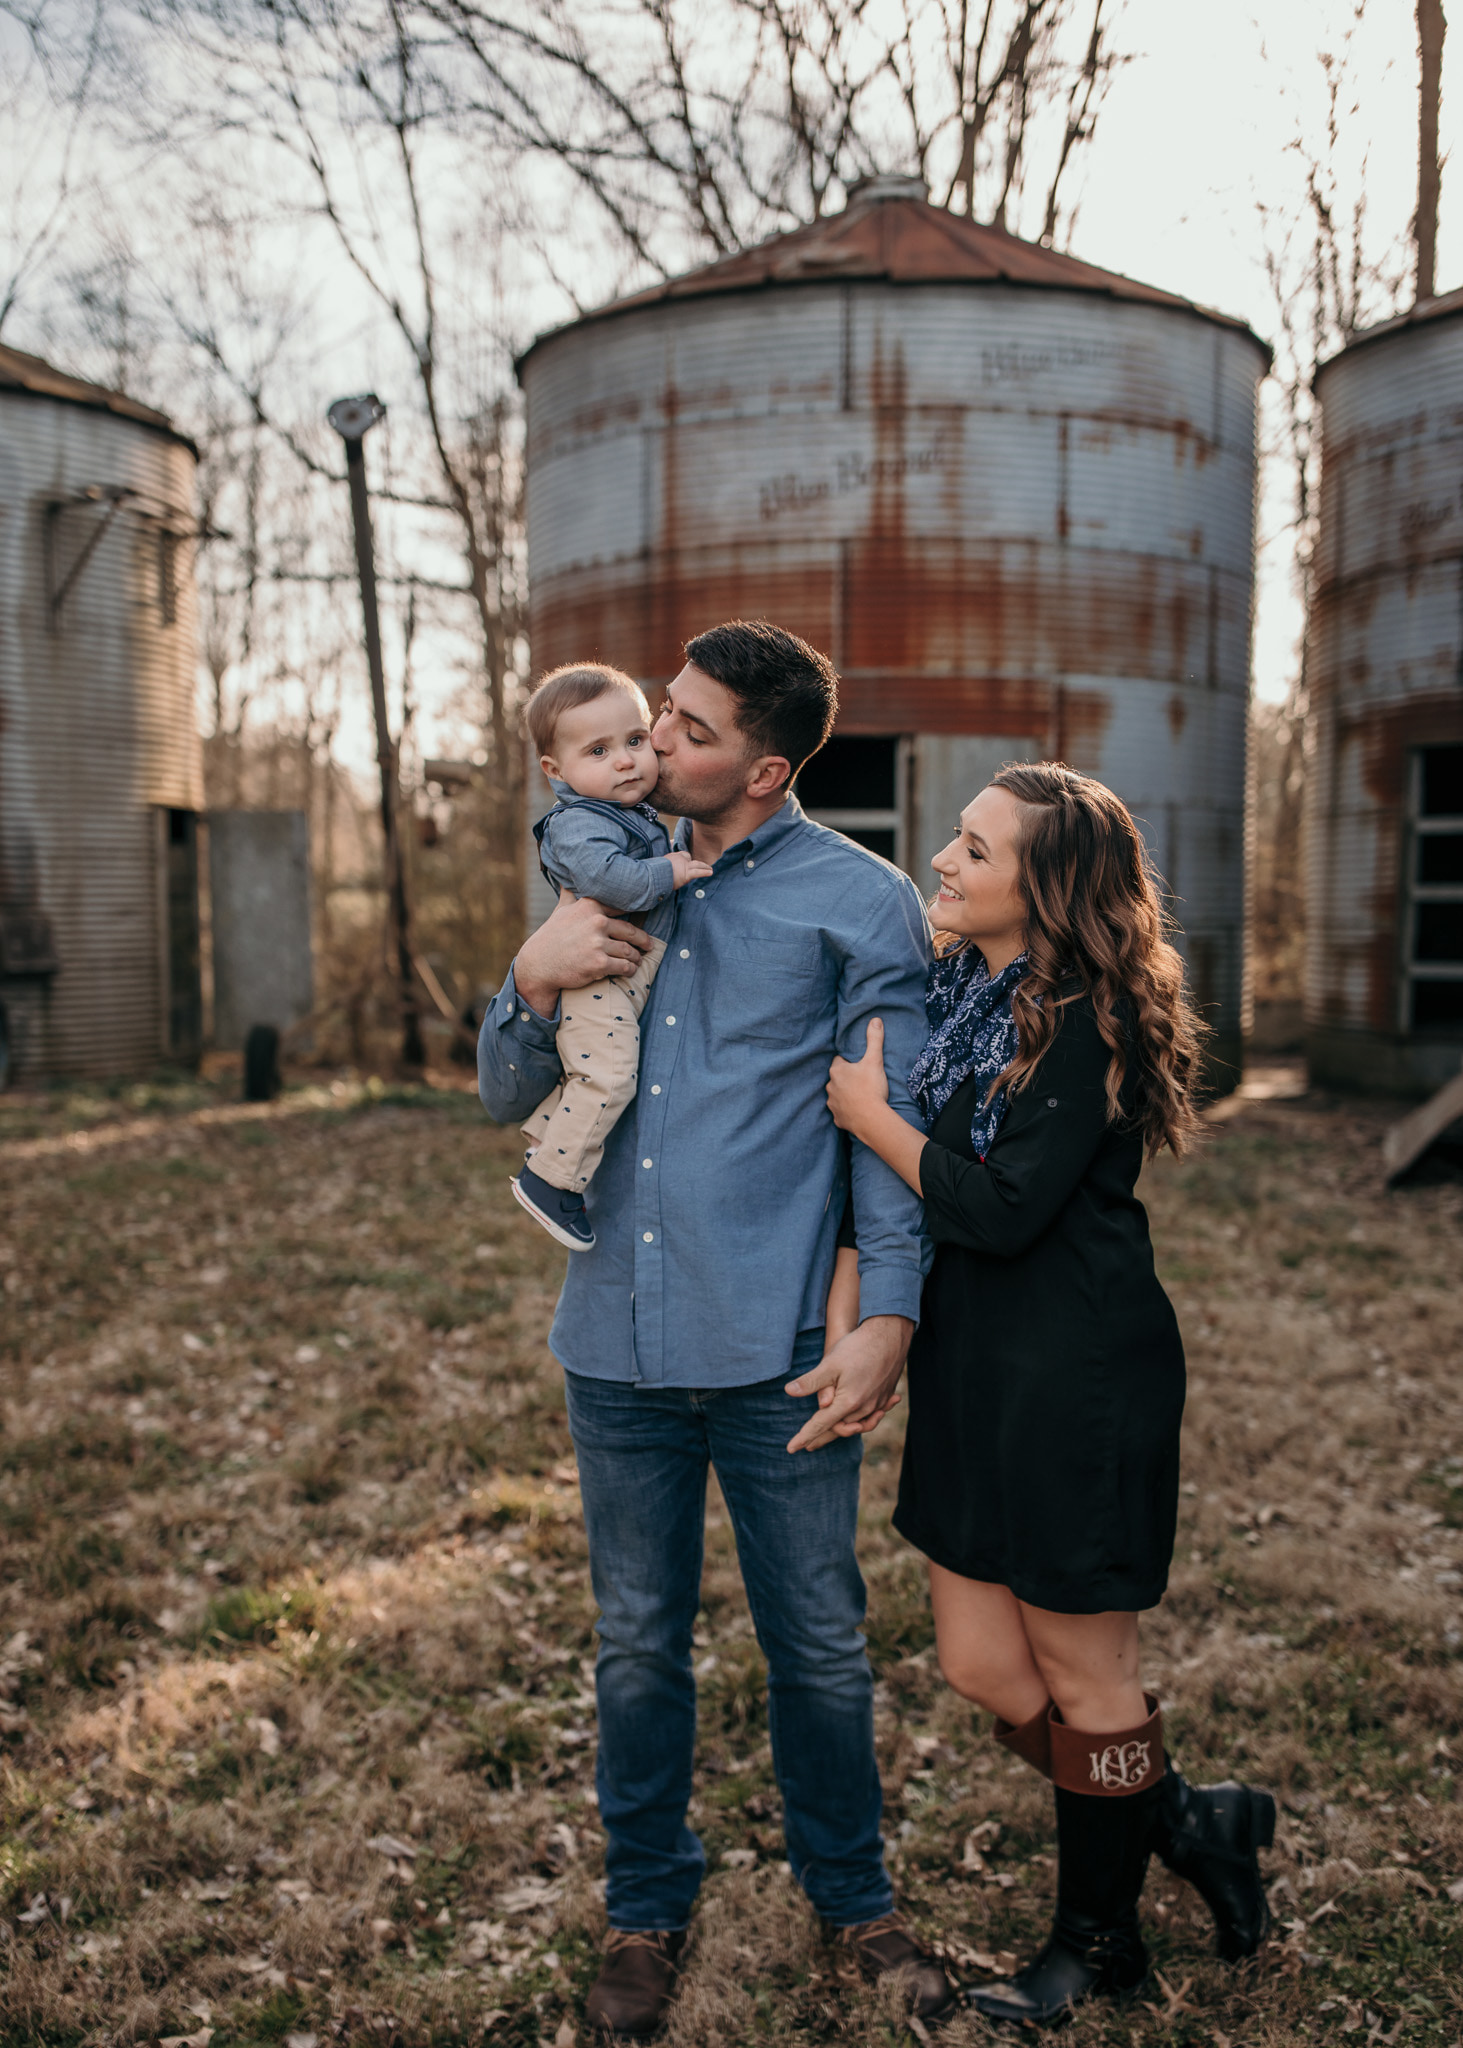 Family photo in front of silos